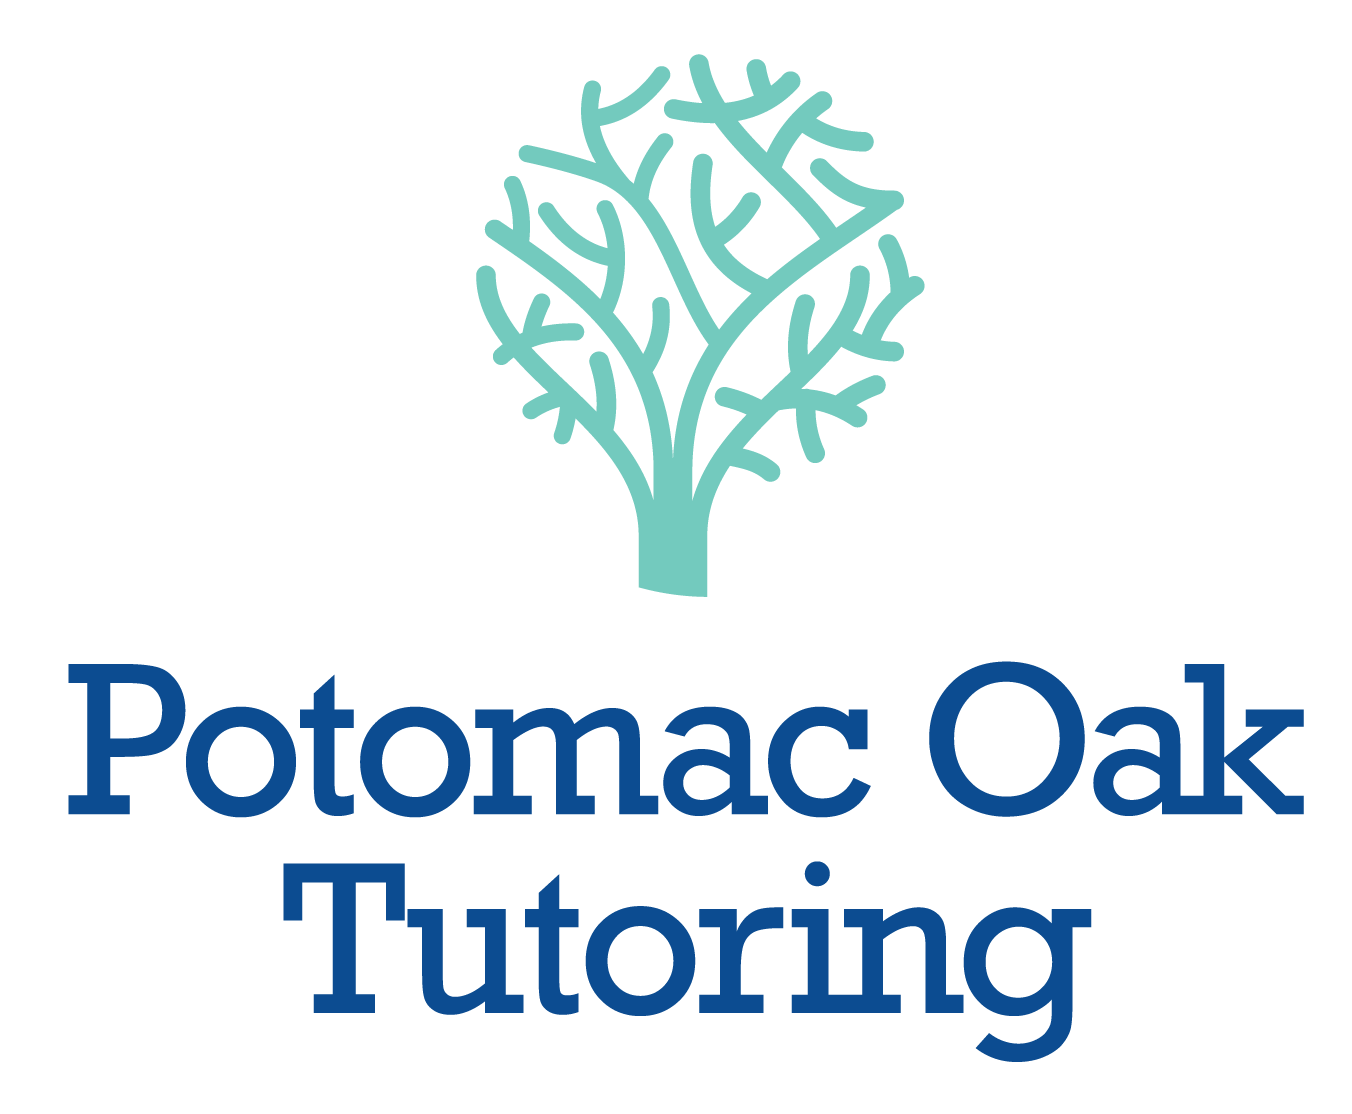 http://www.cinfoshare.org/education/potomac-oak-tutoring